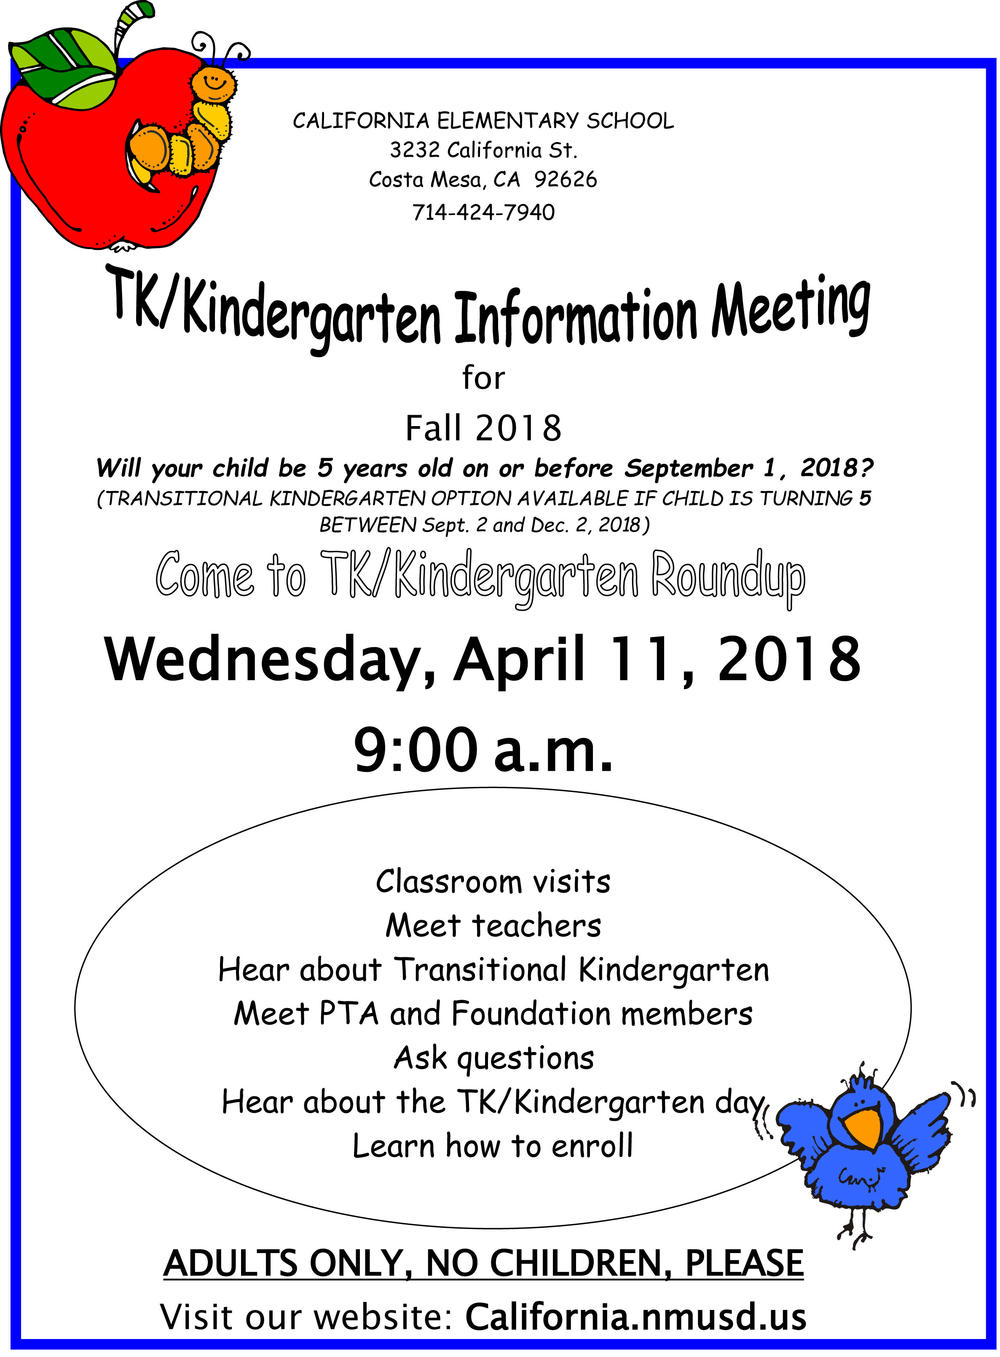 TK Kindergarten Information Meeting flyer